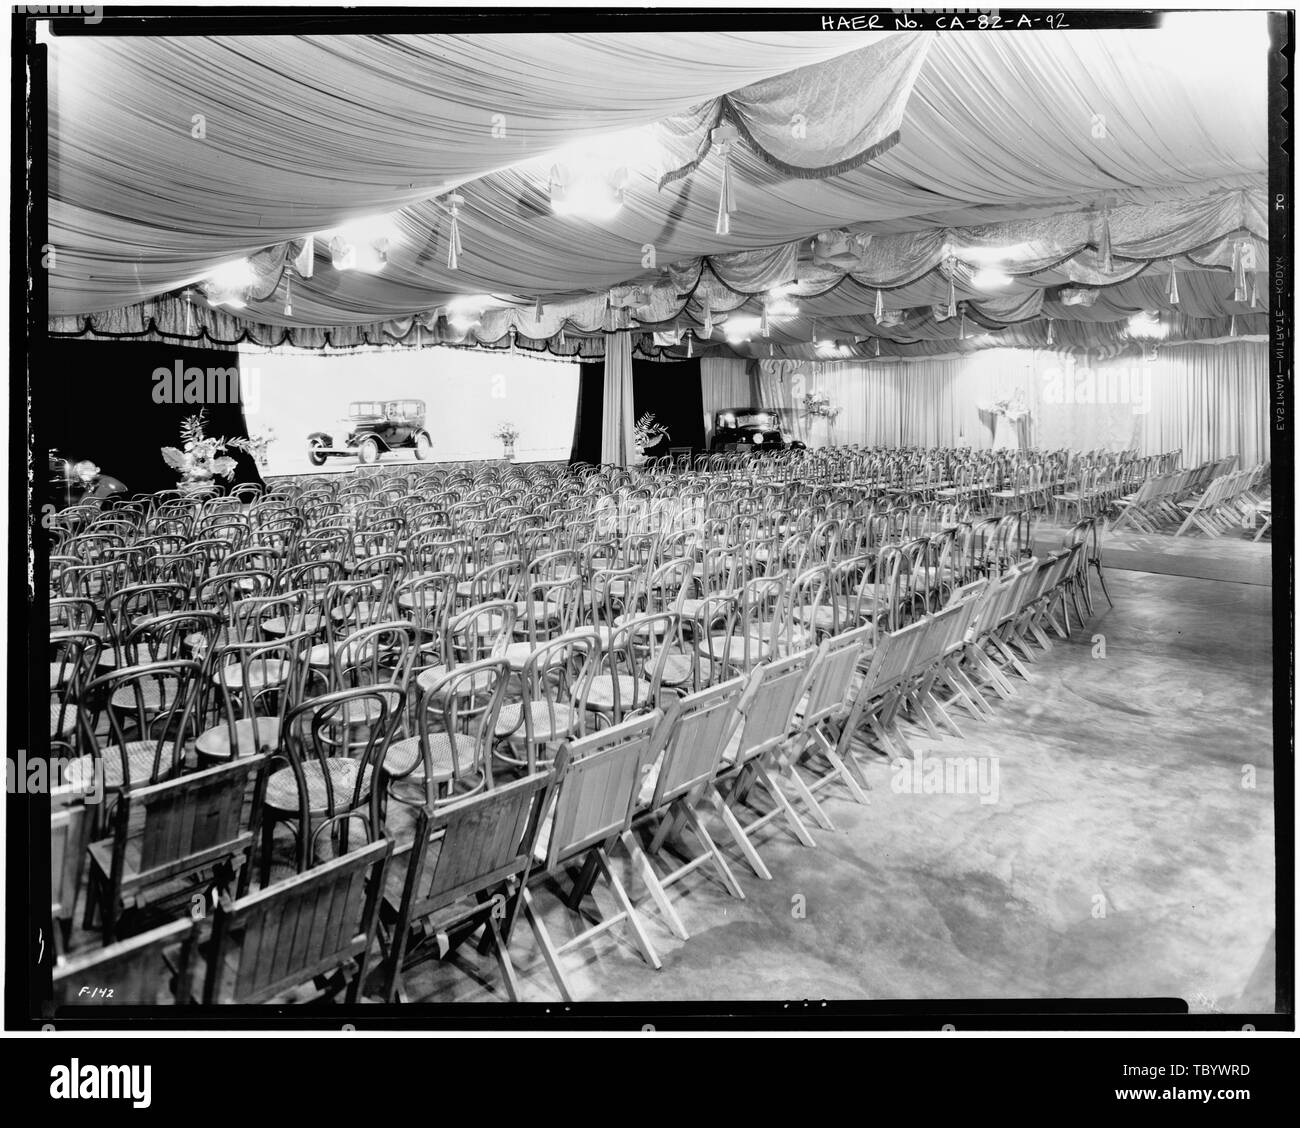 Neg. Nr. F 142, Mar 29, 1932, INTERIORASSEMBLY GEBÄUDE, Bühne und AUSSTELLUNGSRAUM Ford Motor Company Long Beach Montagewerk, Assembly Building, 700 Henry Ford Avenue, Long Beach, Los Angeles County, CA Stockbild